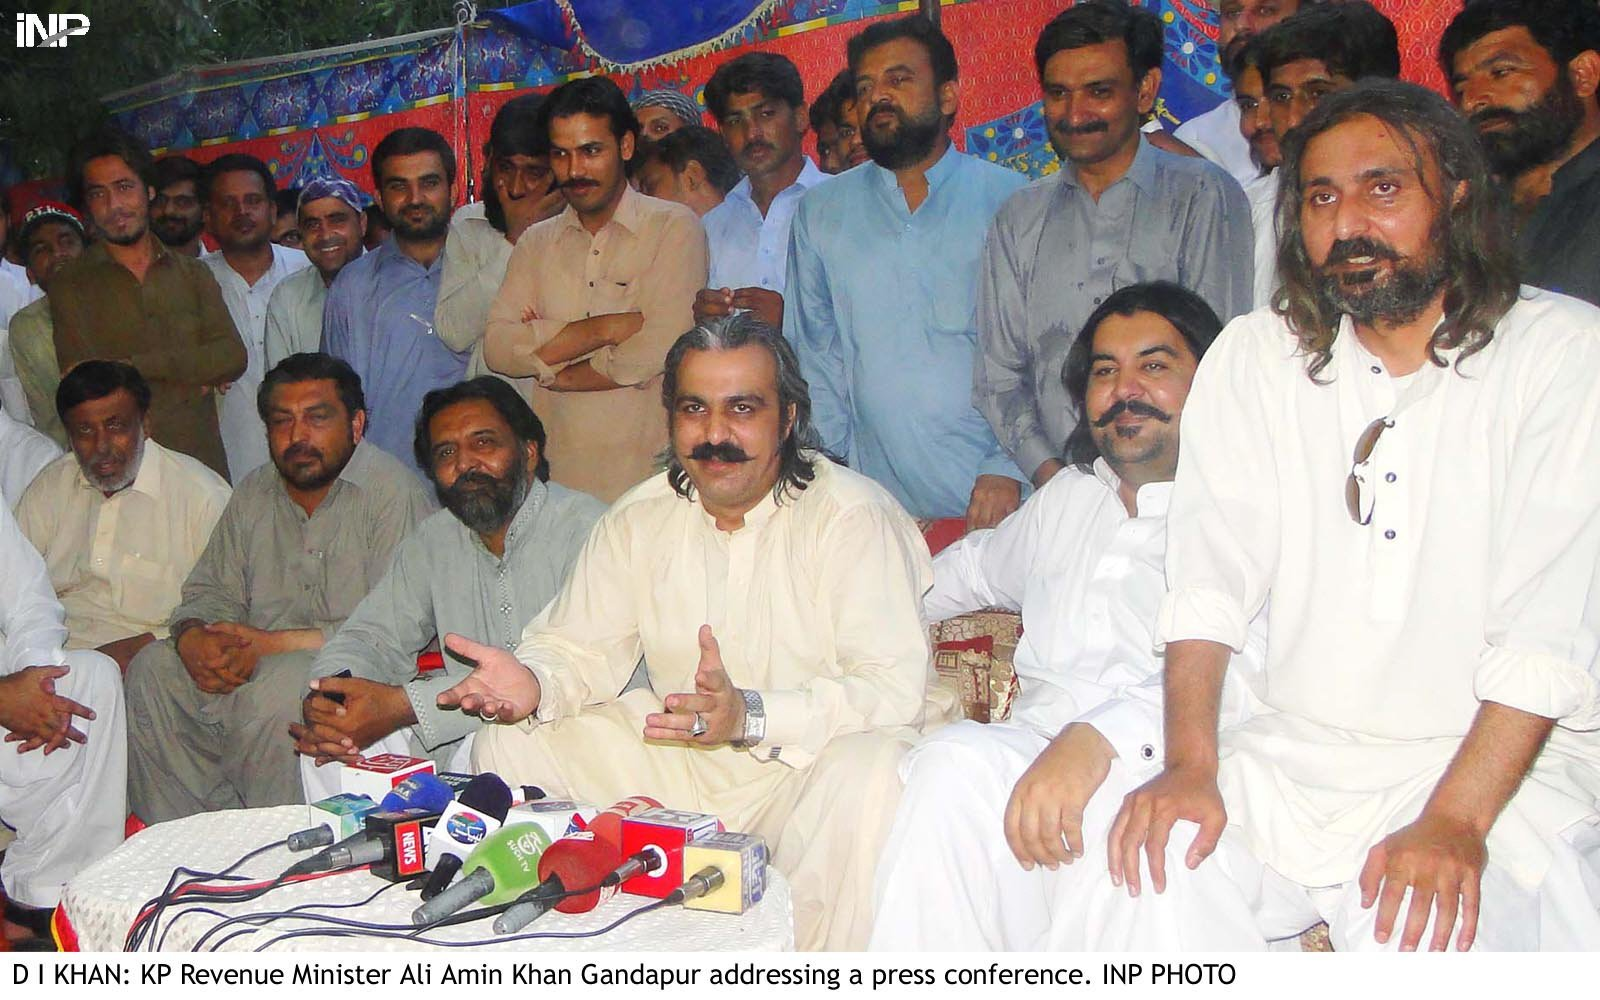 pti s gandapur to air drop gifts on eid